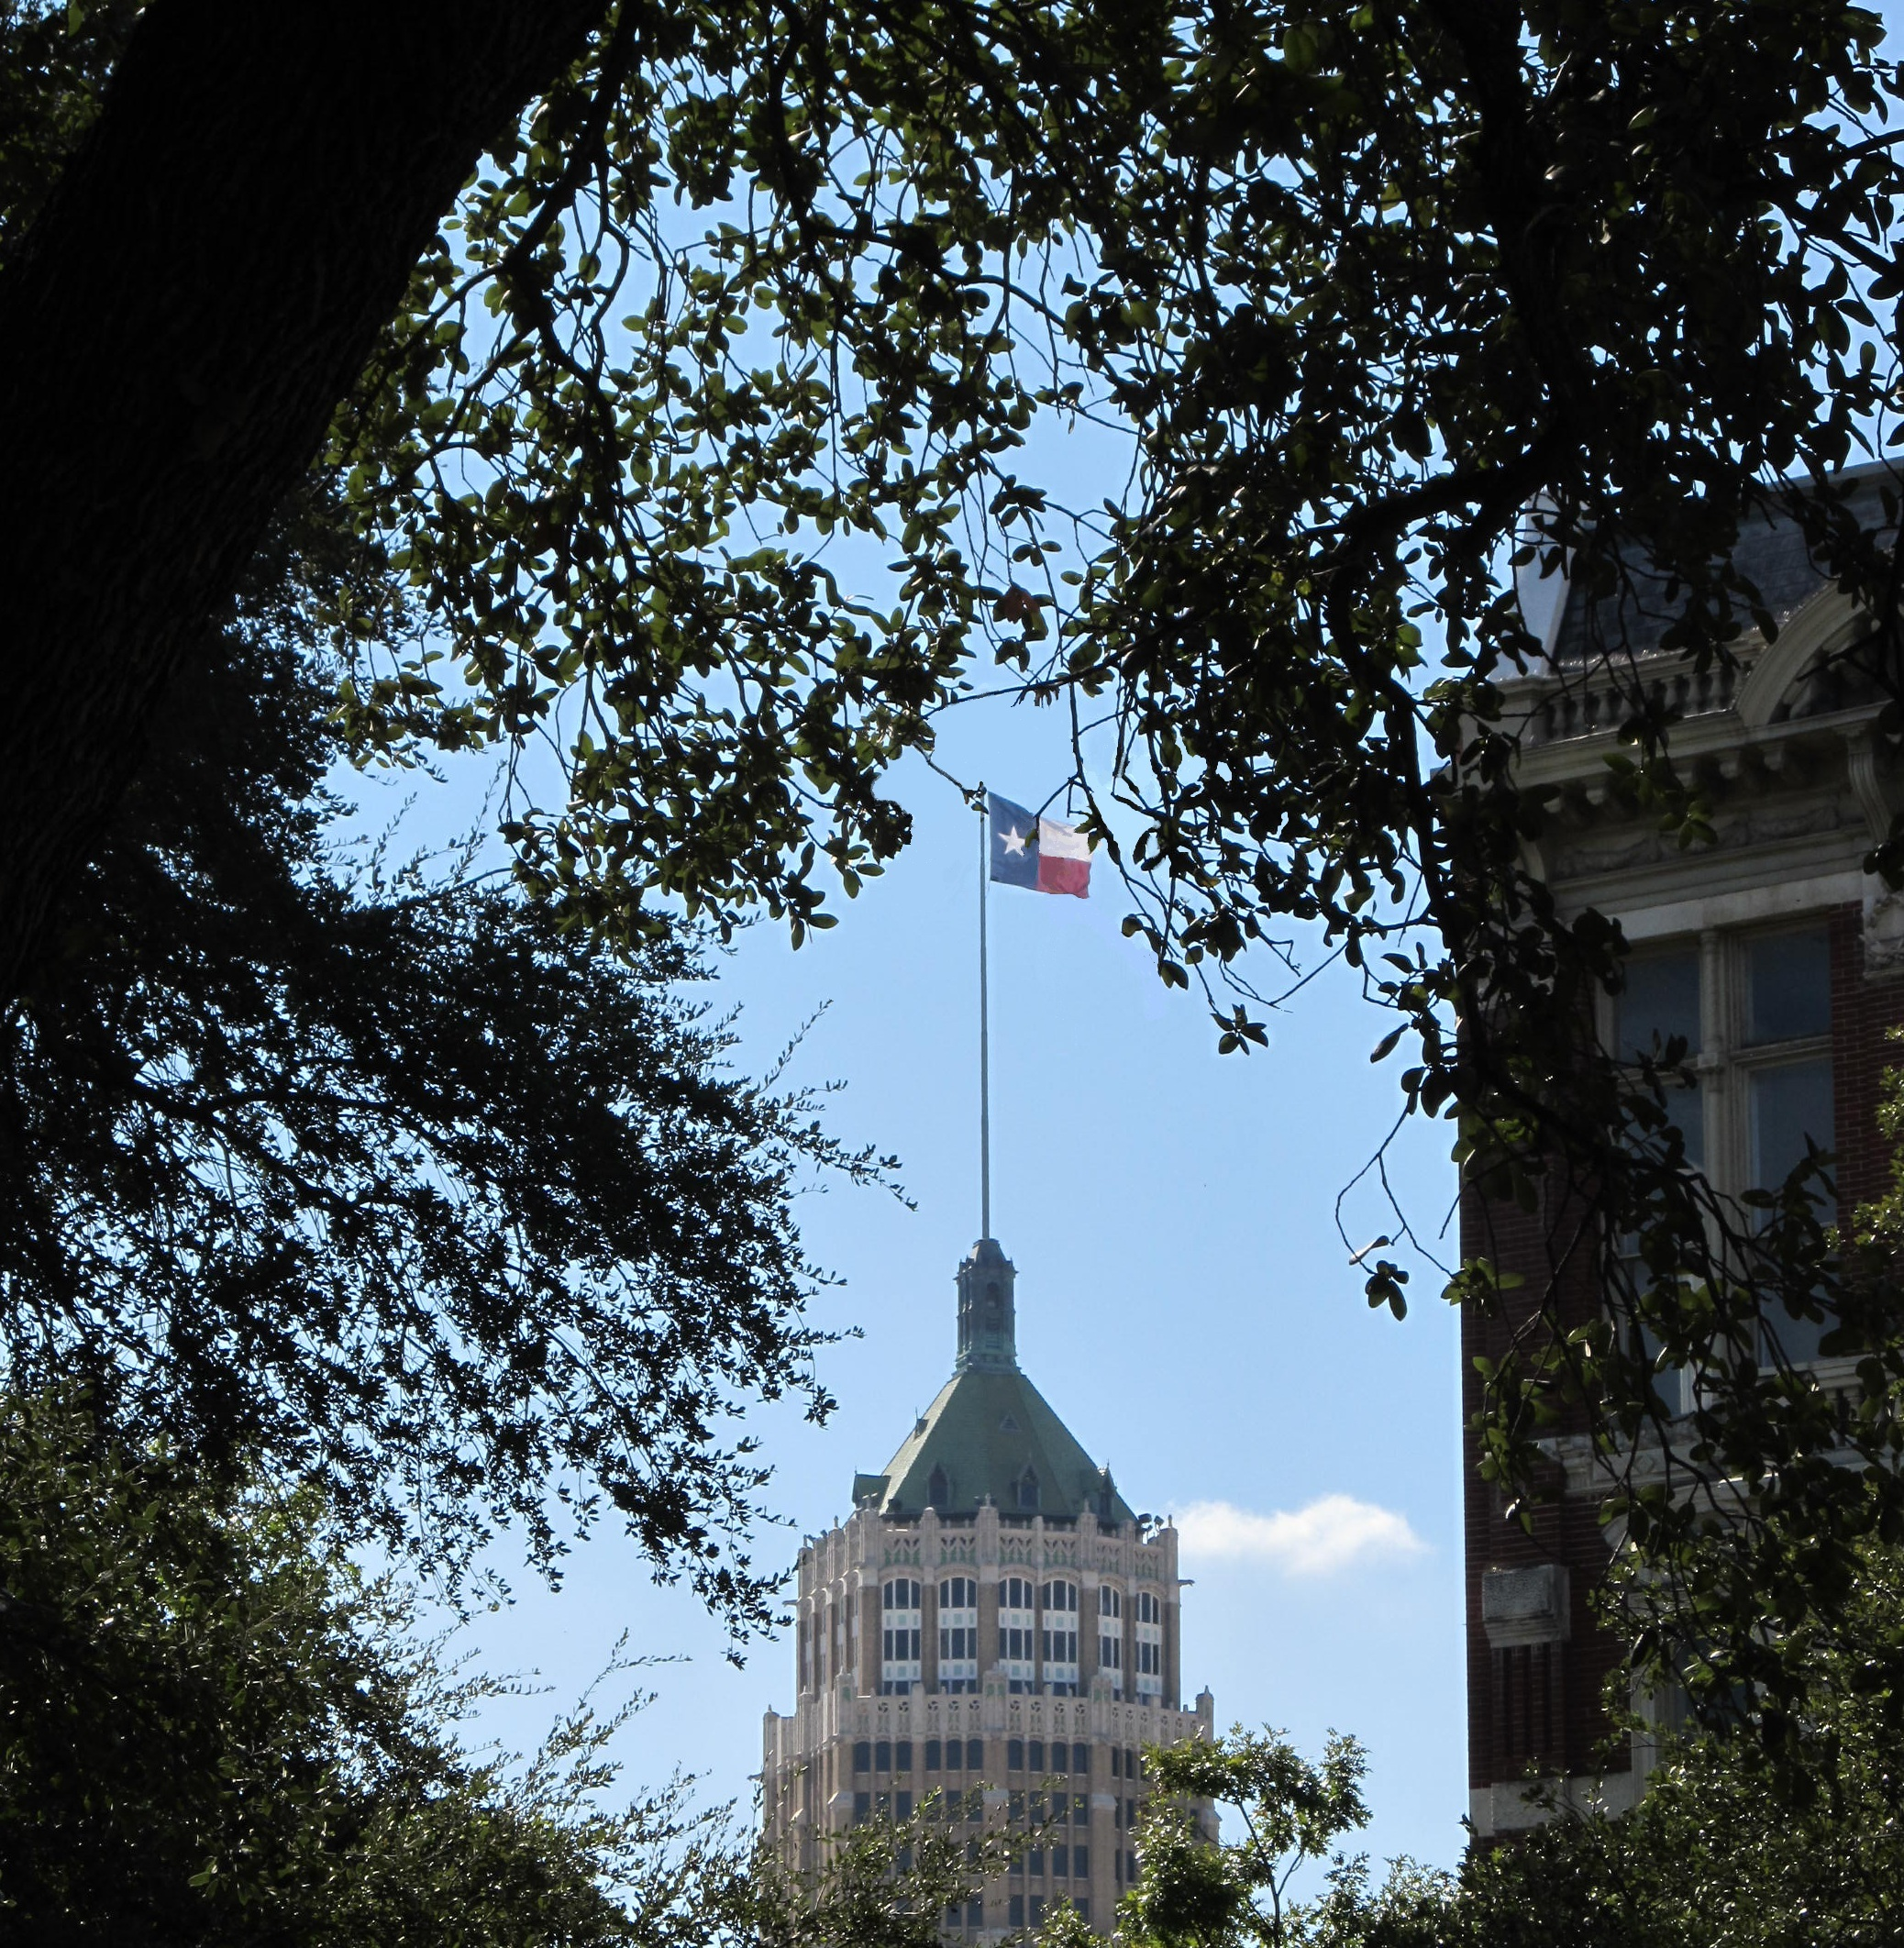 Lone star flag on the building photo